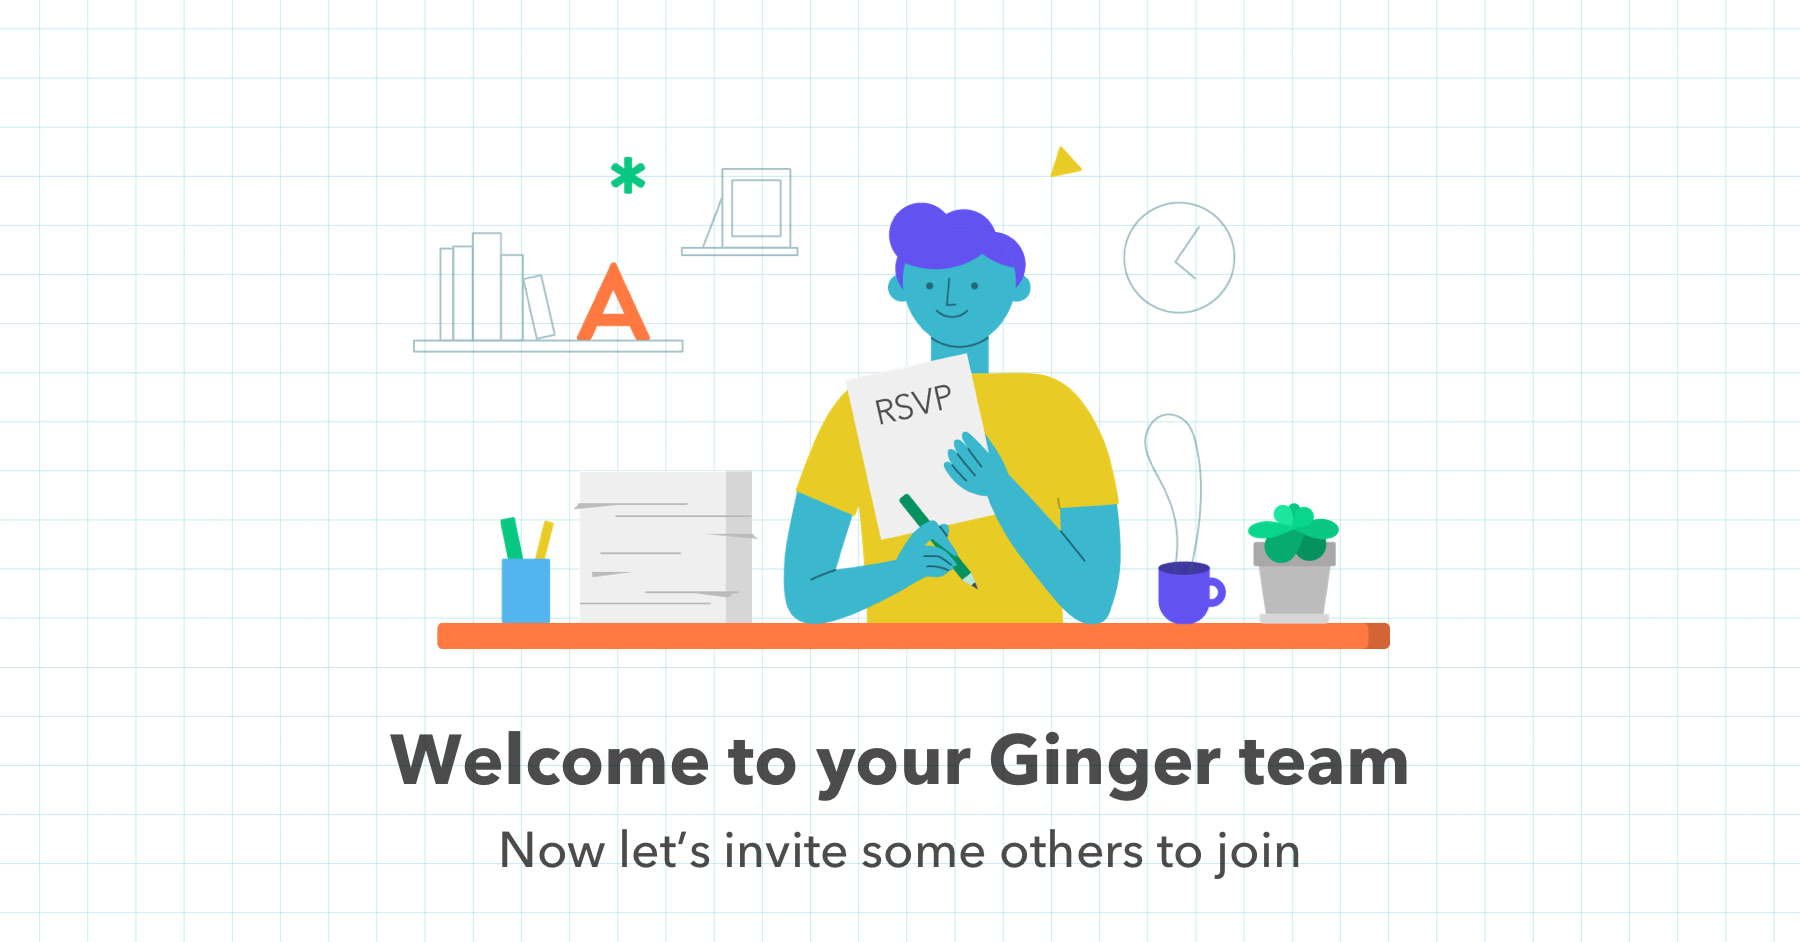 Ginger marketing and product elements